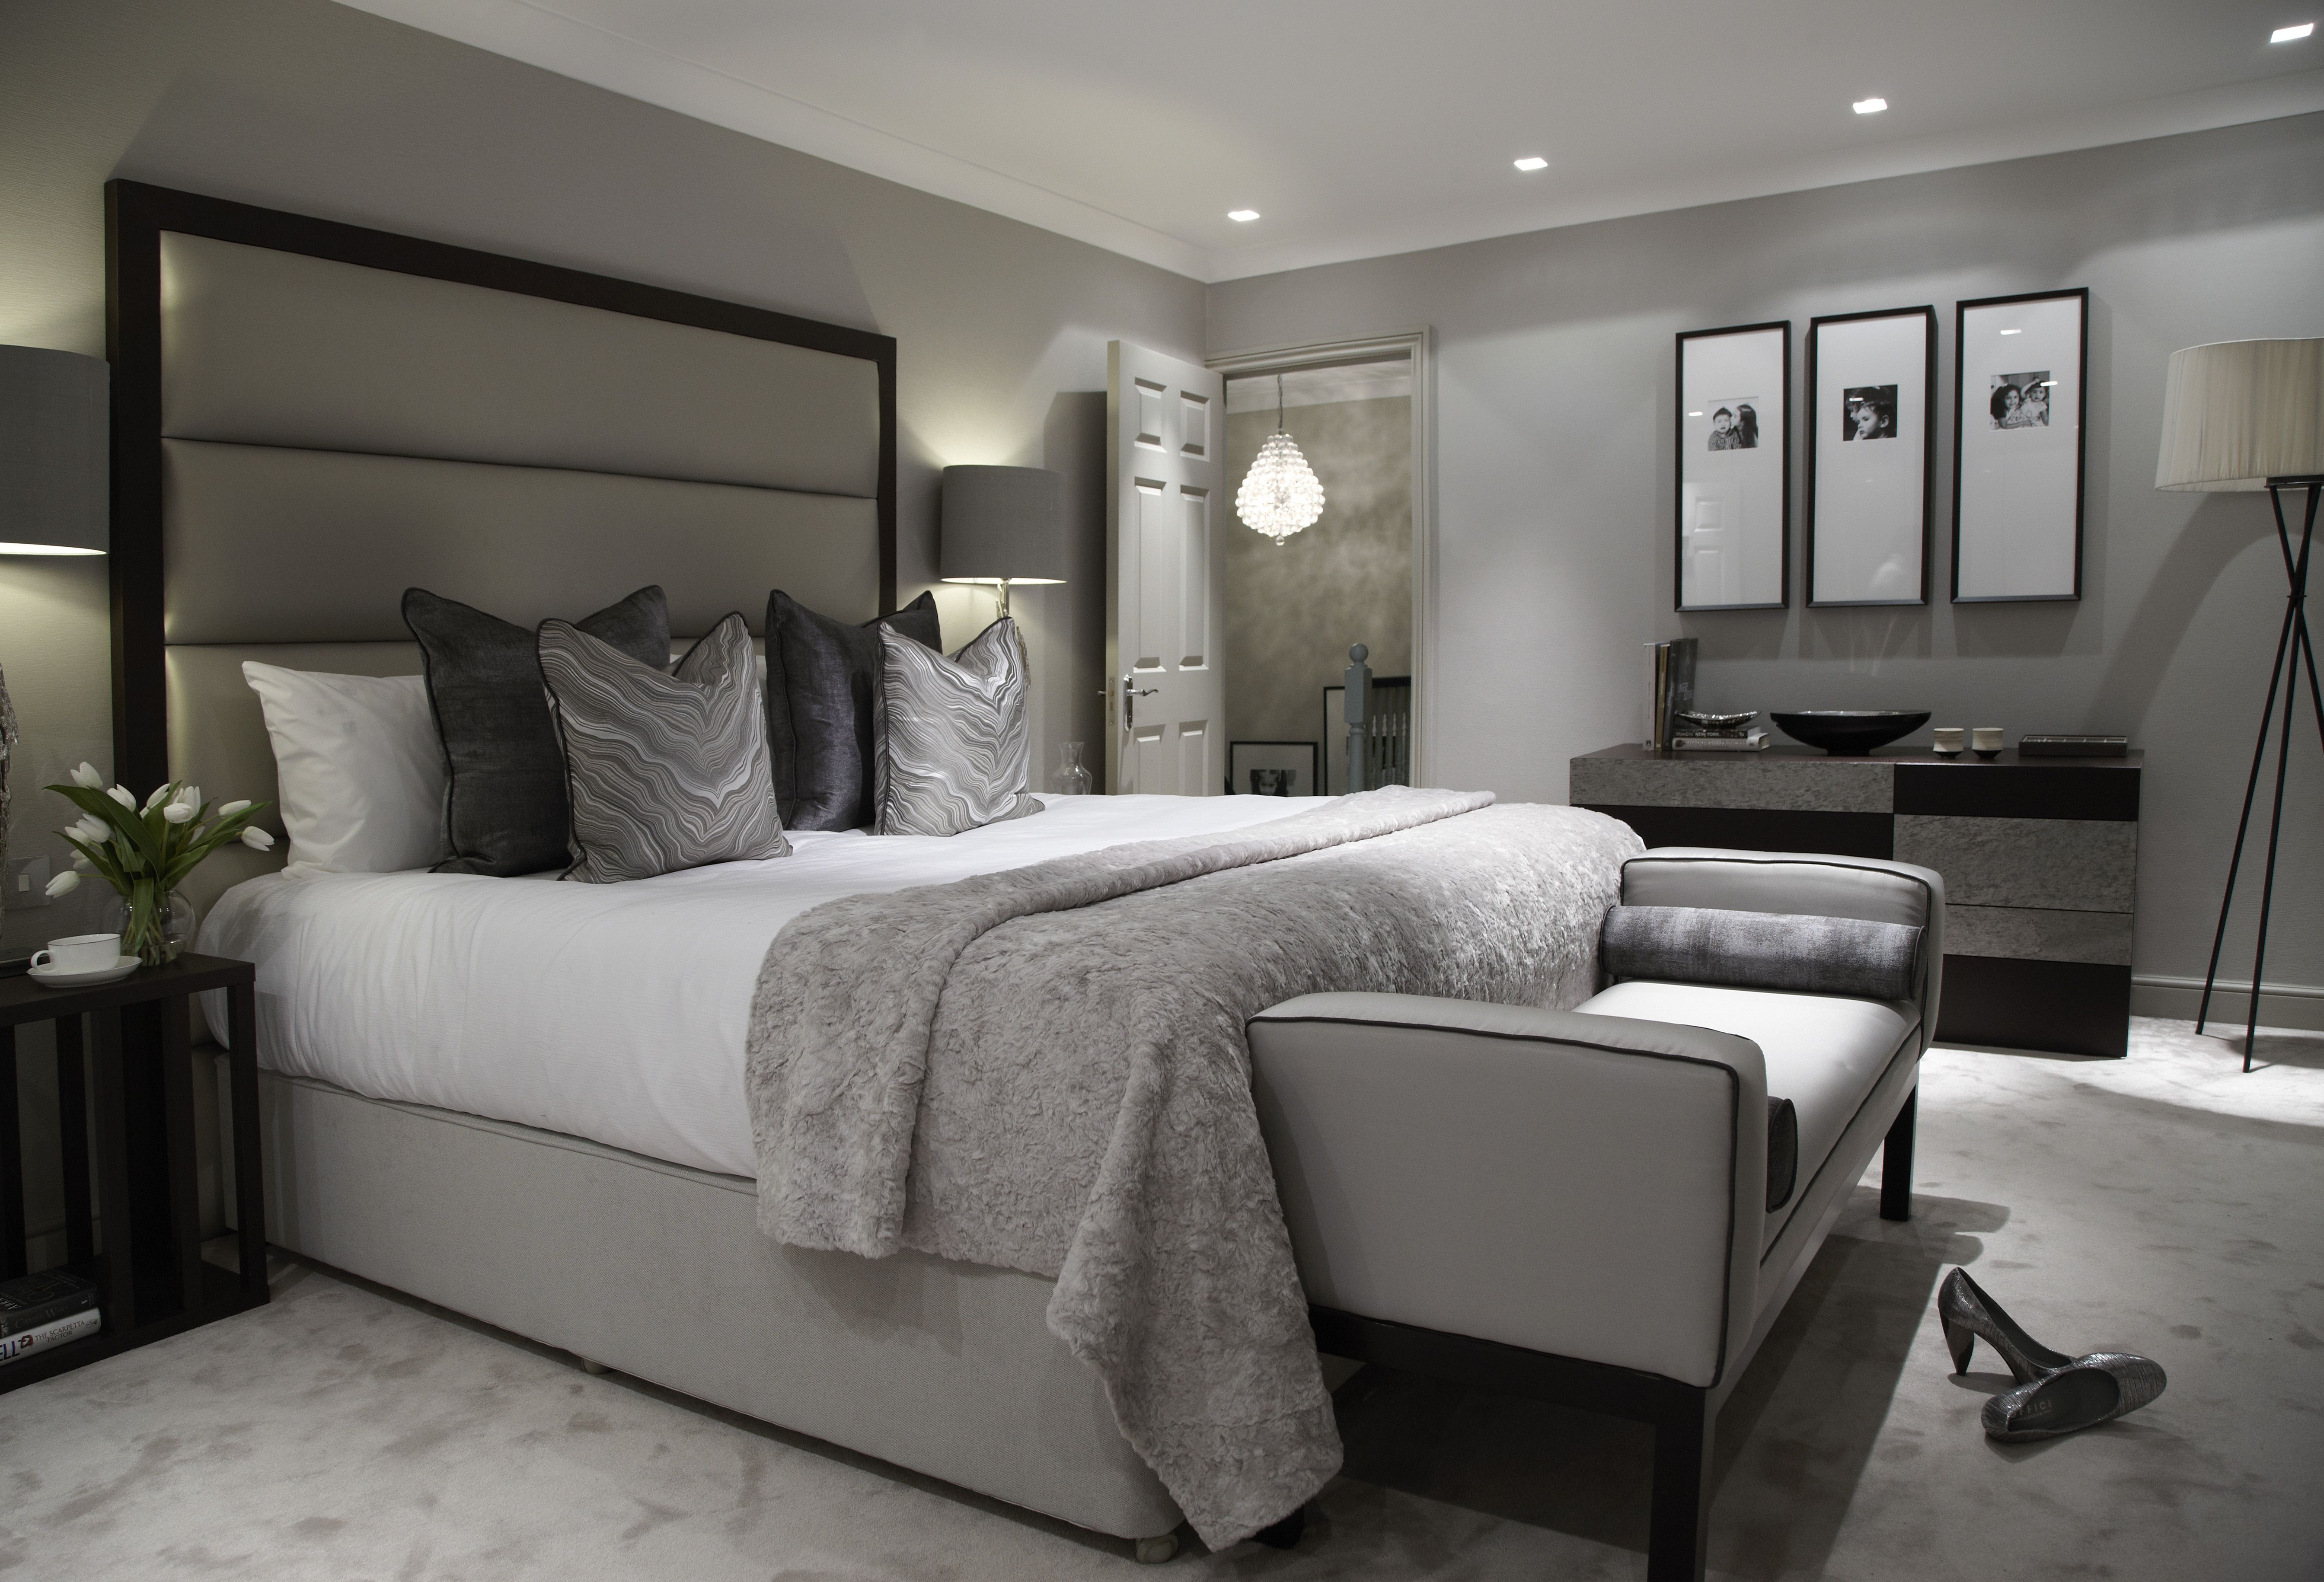 Boscolo Detached Family Home Master Bedroom Bedroom Designs For Couples Unique Bedroom Ideas Small Room Bedroom